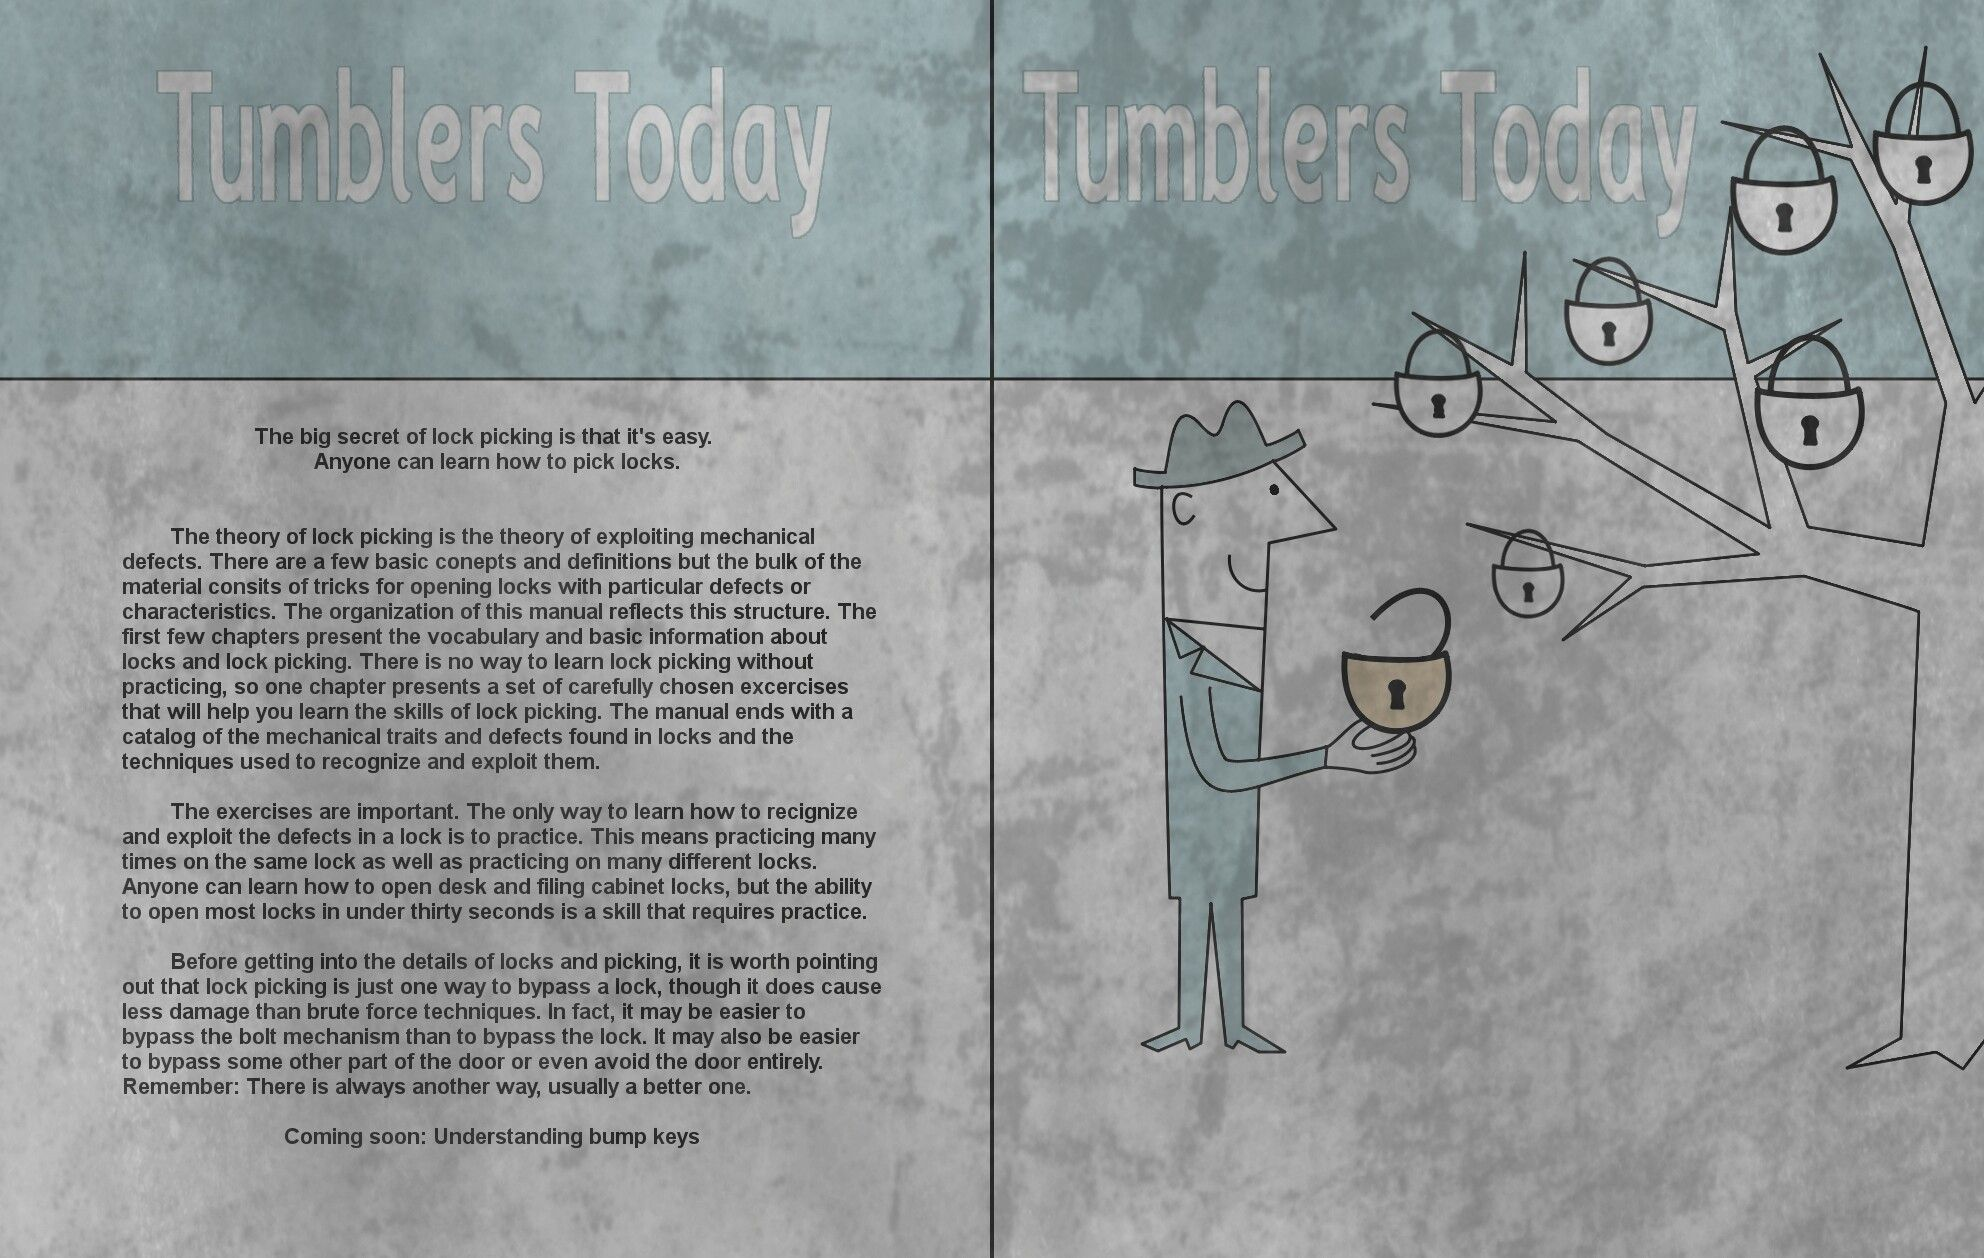 Tumblers today cover